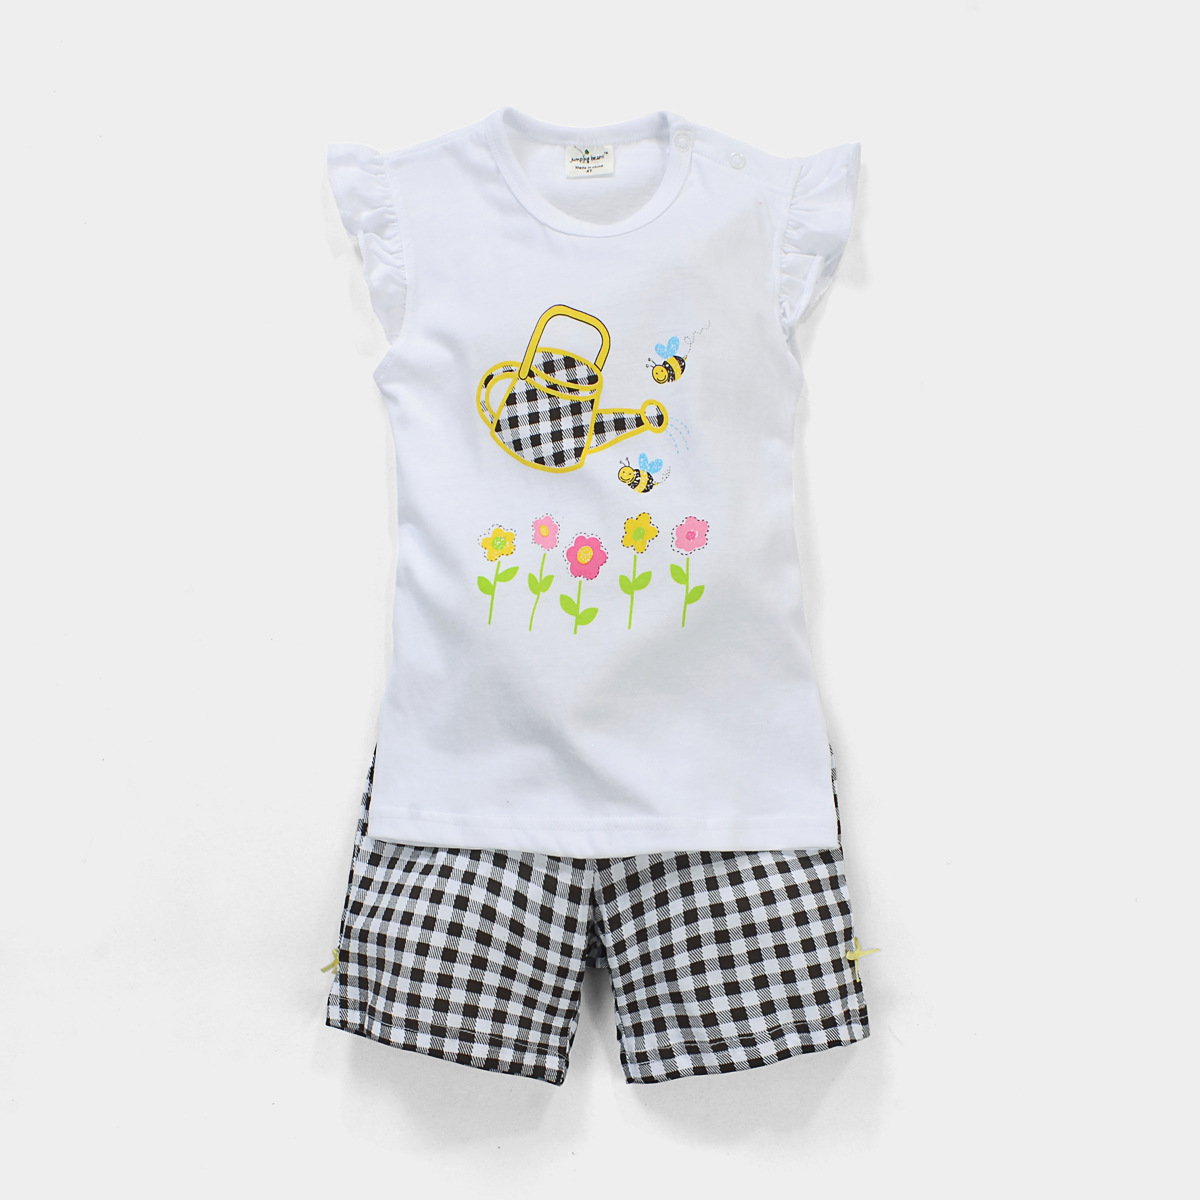 18M-6Y Girls Clothes Baby Girls Clothing Set Children Girls Suit Set Kids Outfits Cotton White Girl T shirt + Grid Shorts<br><br>Aliexpress